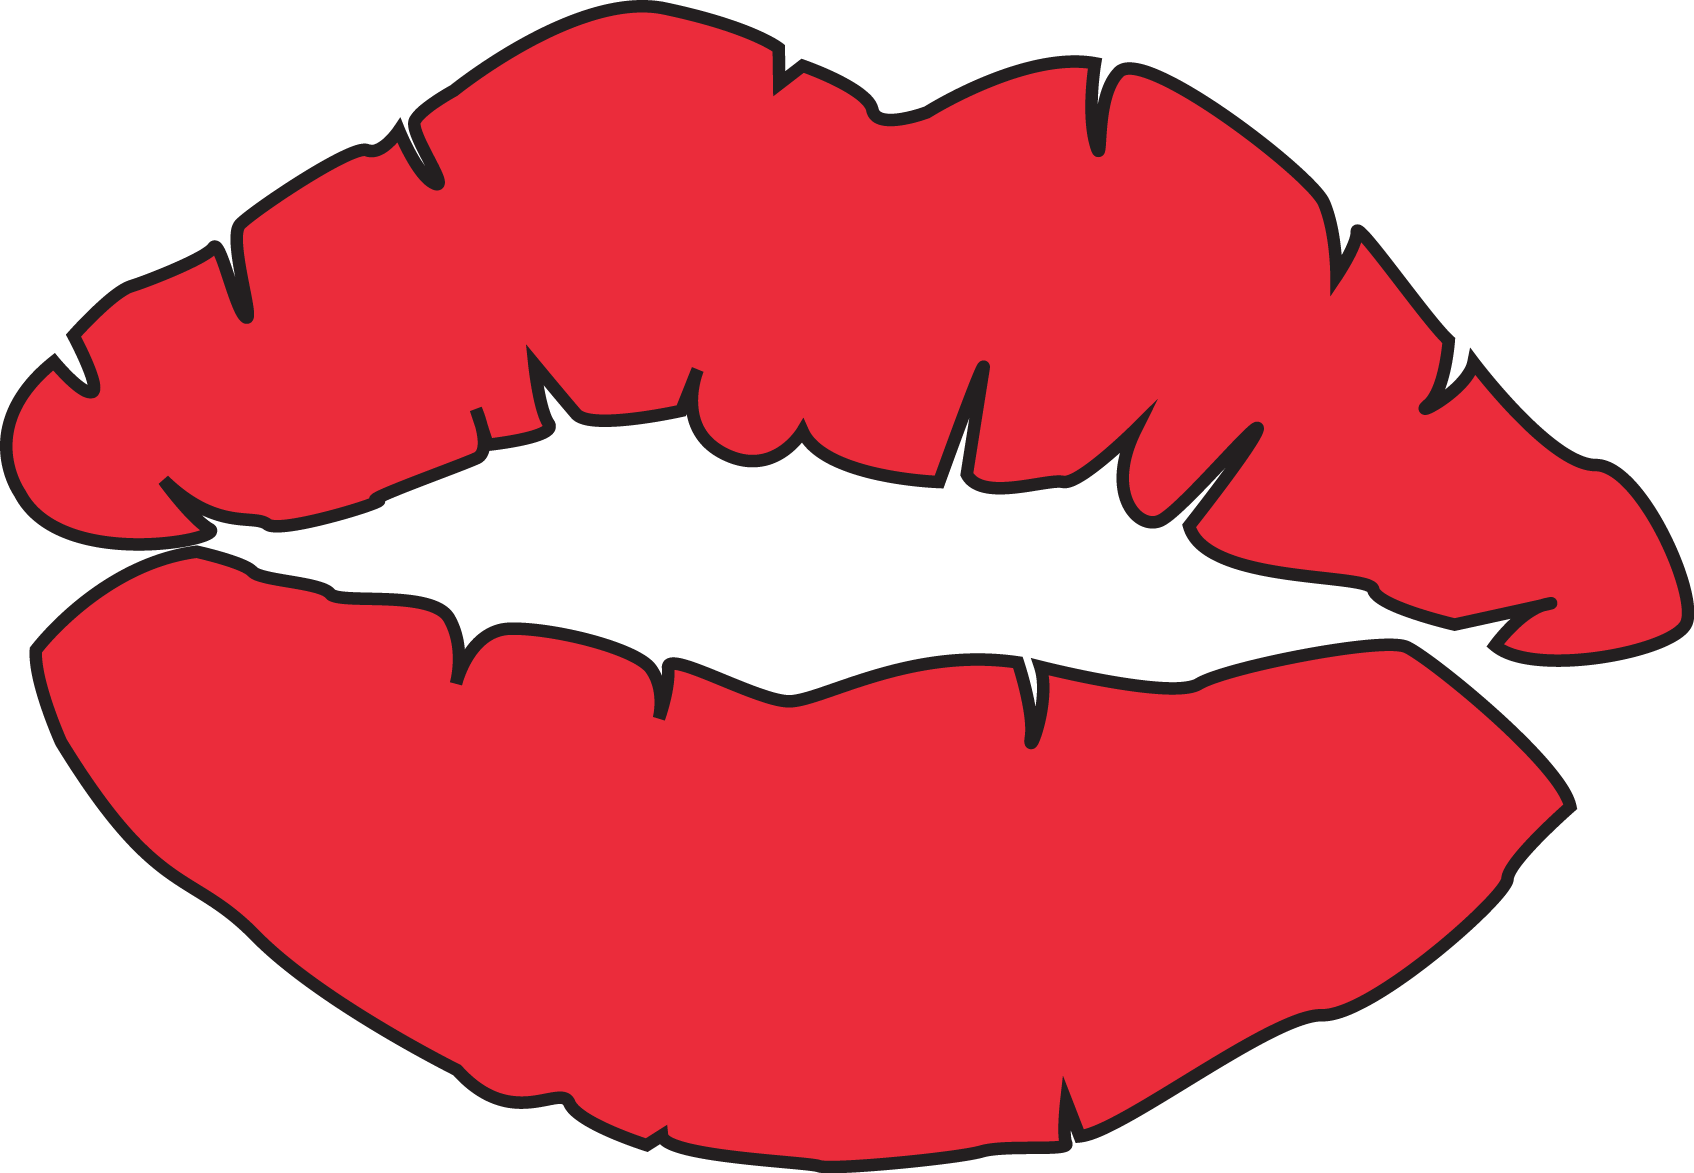 1694x1173 Kiss Lips Kissing Lips Clipart Free Download Clip Art